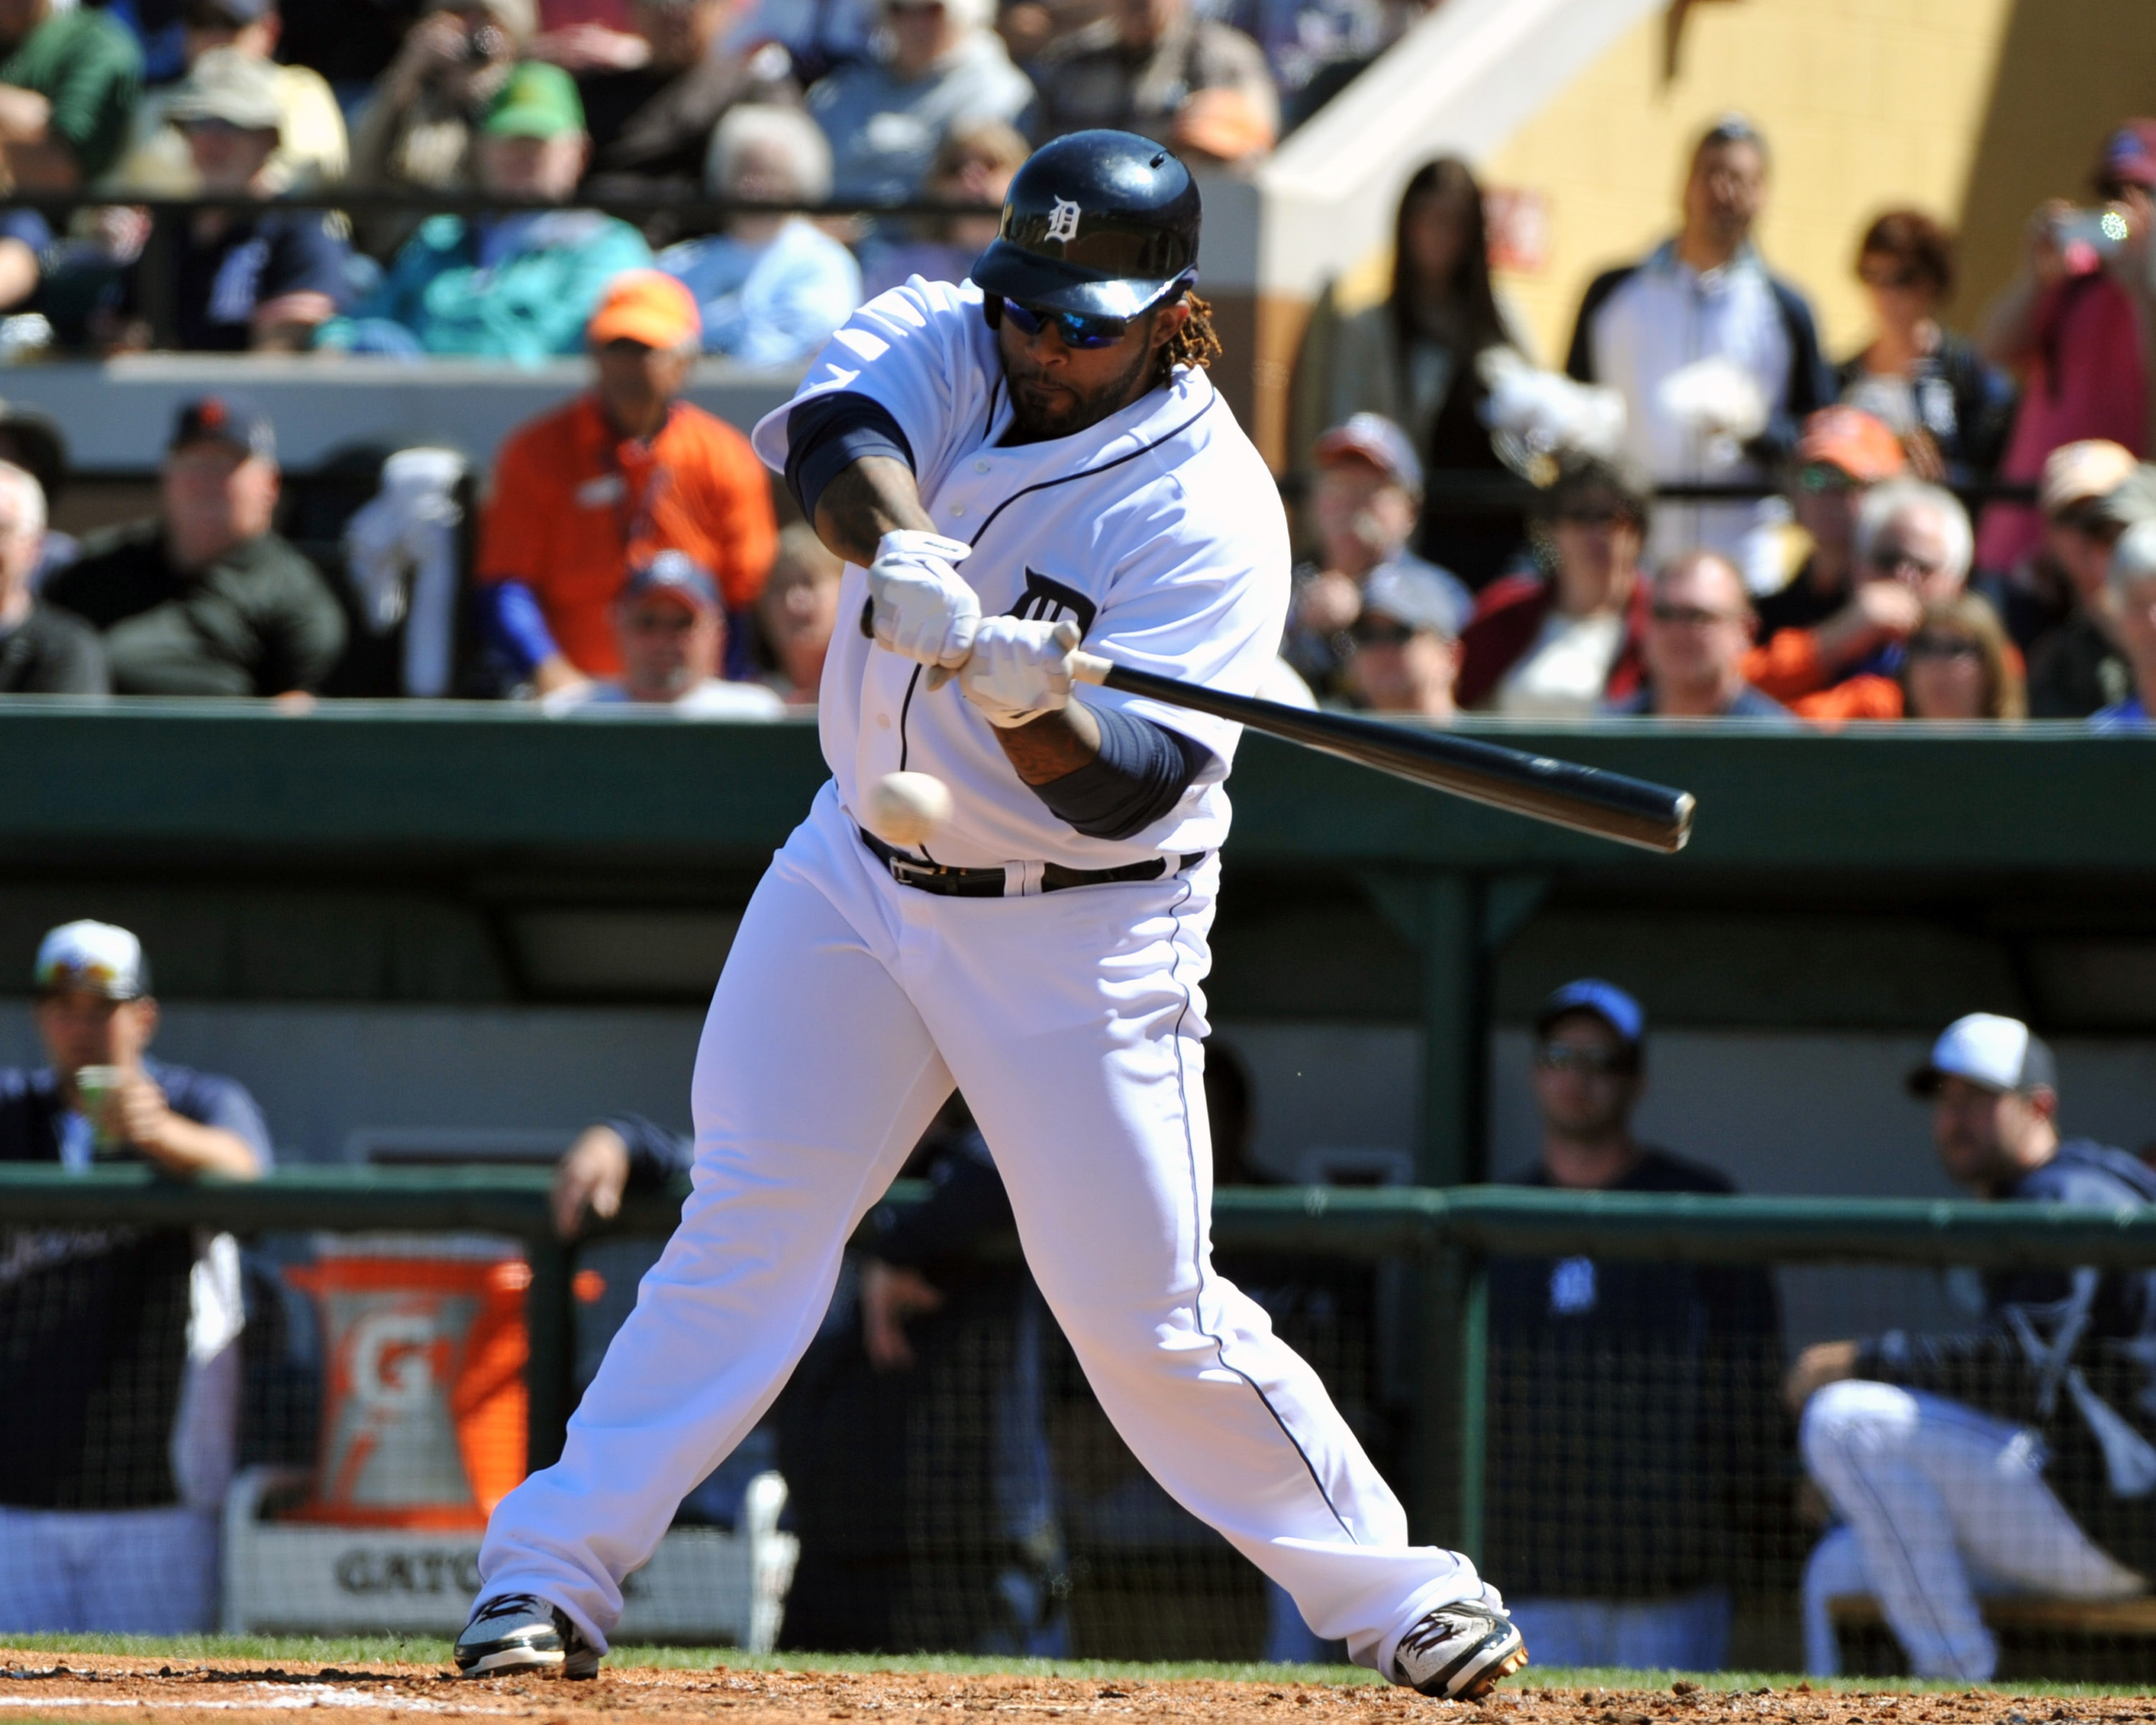 Prince Fielder has previously said he won't play in the World Baseball Classic. (Getty Images)